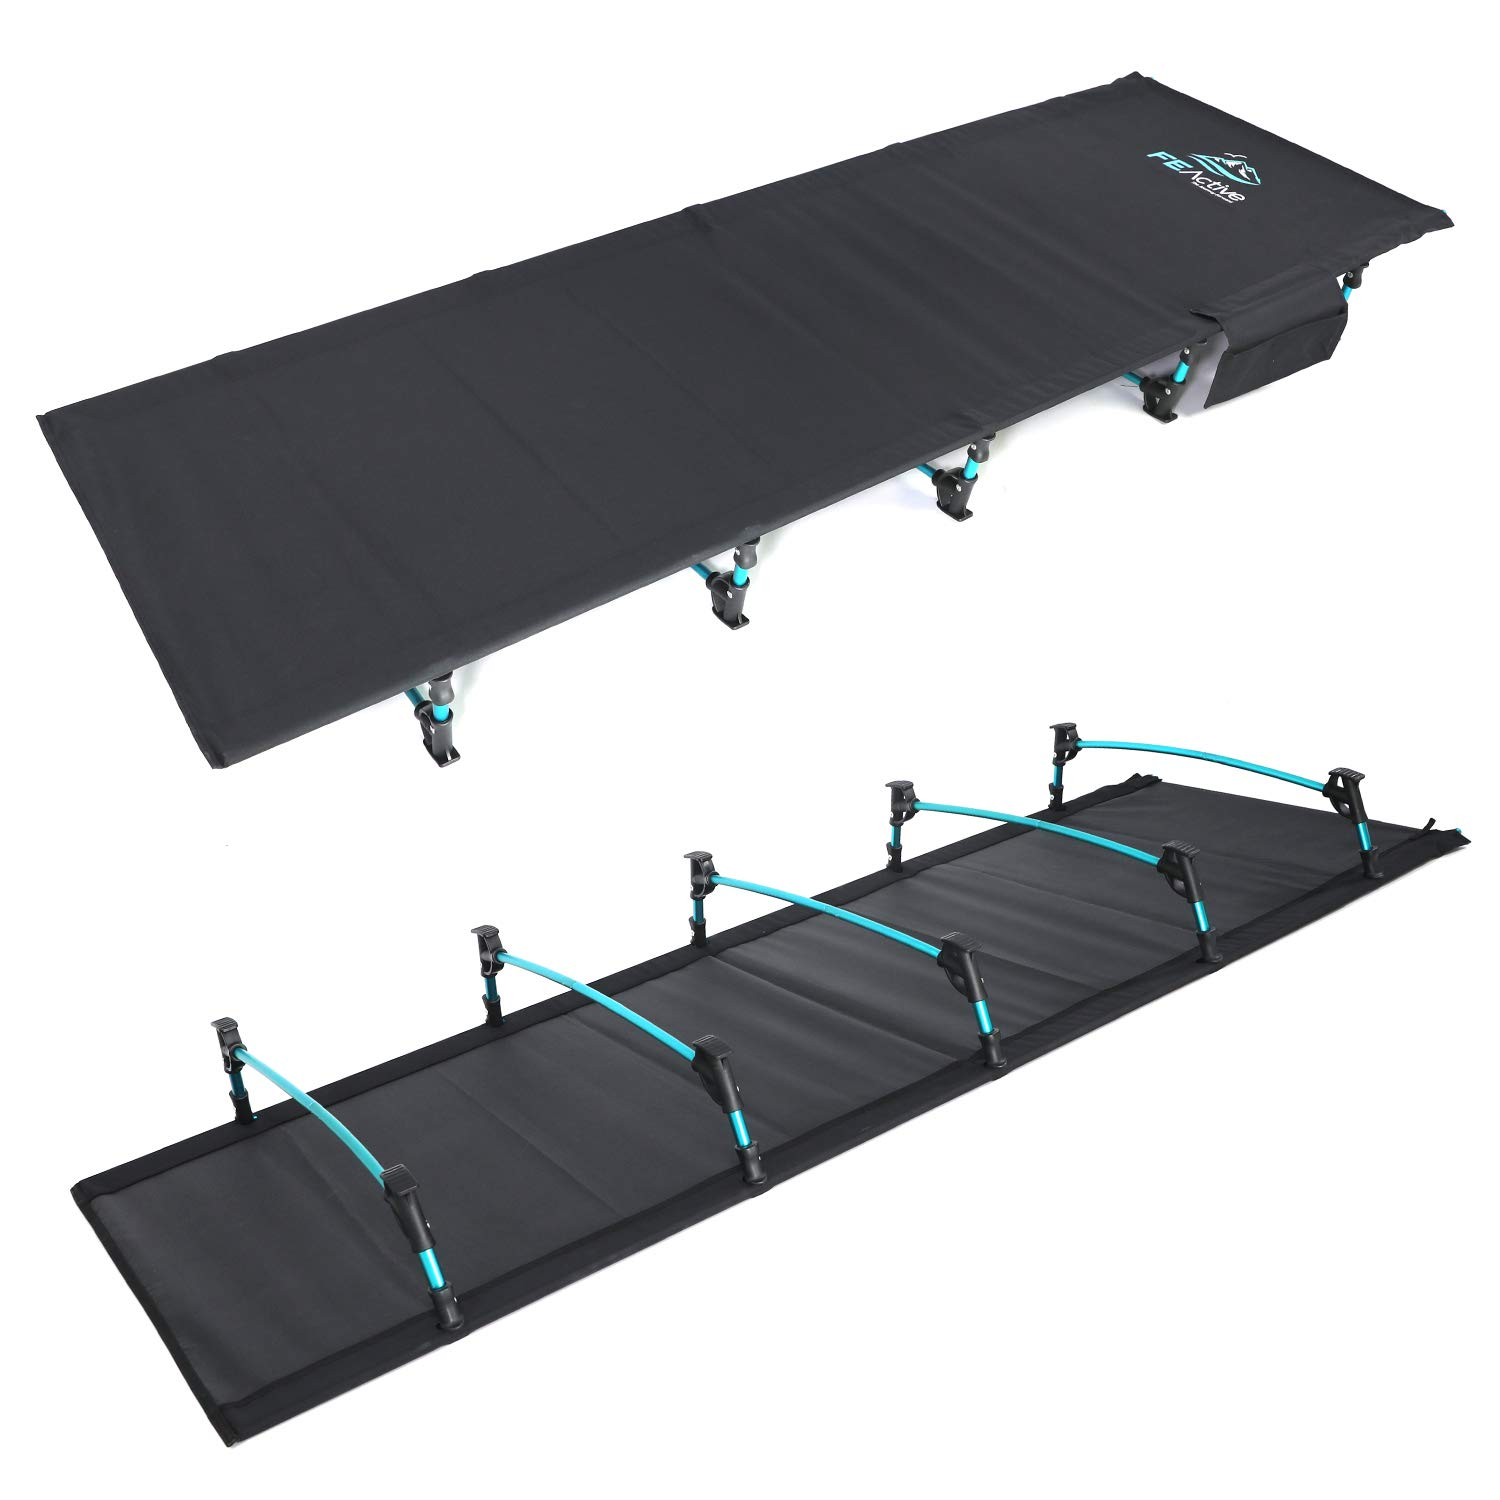 FE Active - Compact Folding Cot Built with Full Aluminum Designed as Ultralight Portable Camping Bed for Camping, Hiking, Trekking, Backpacking| Designed in California, USA by FE Active